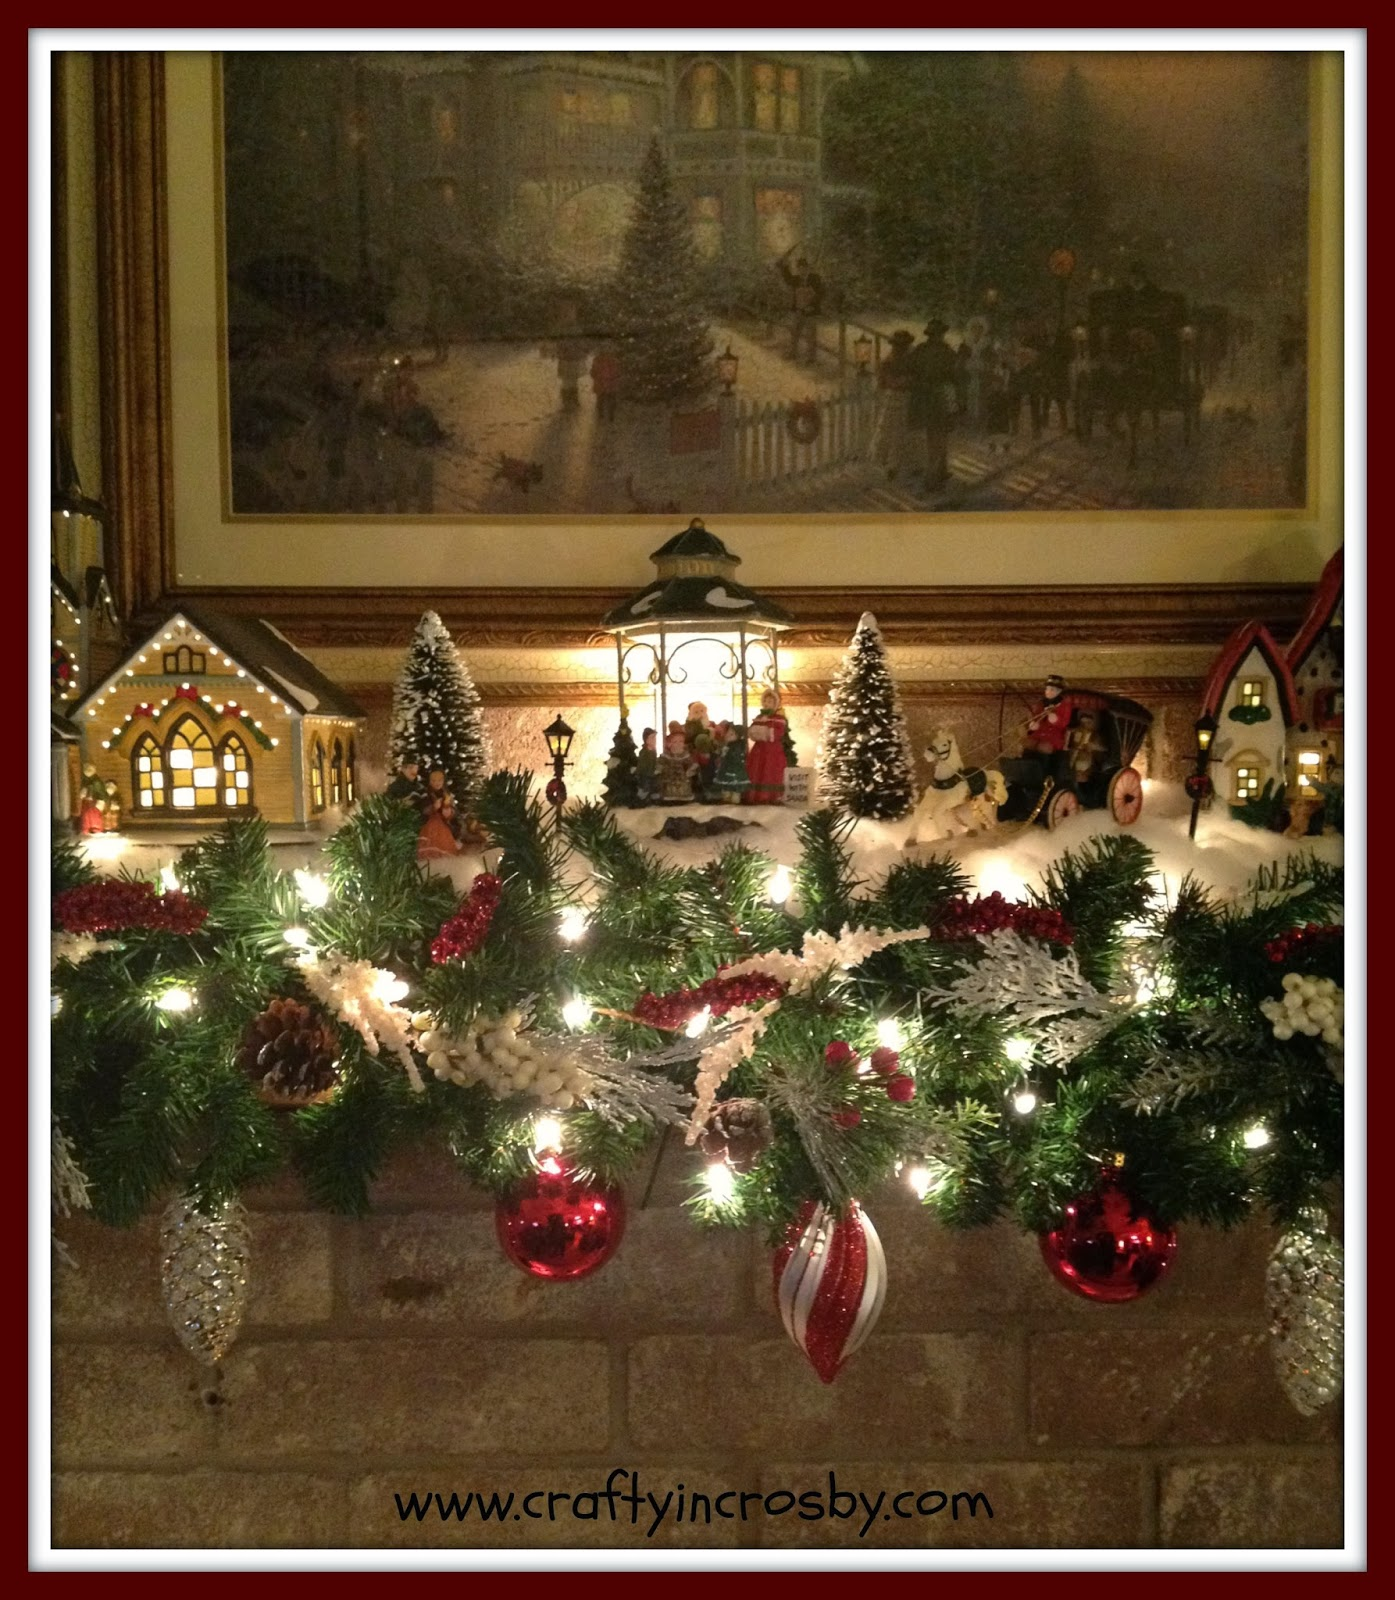 Mantle Decorations Christmas: Crafty In Crosby: Mom's Christmas Mantel